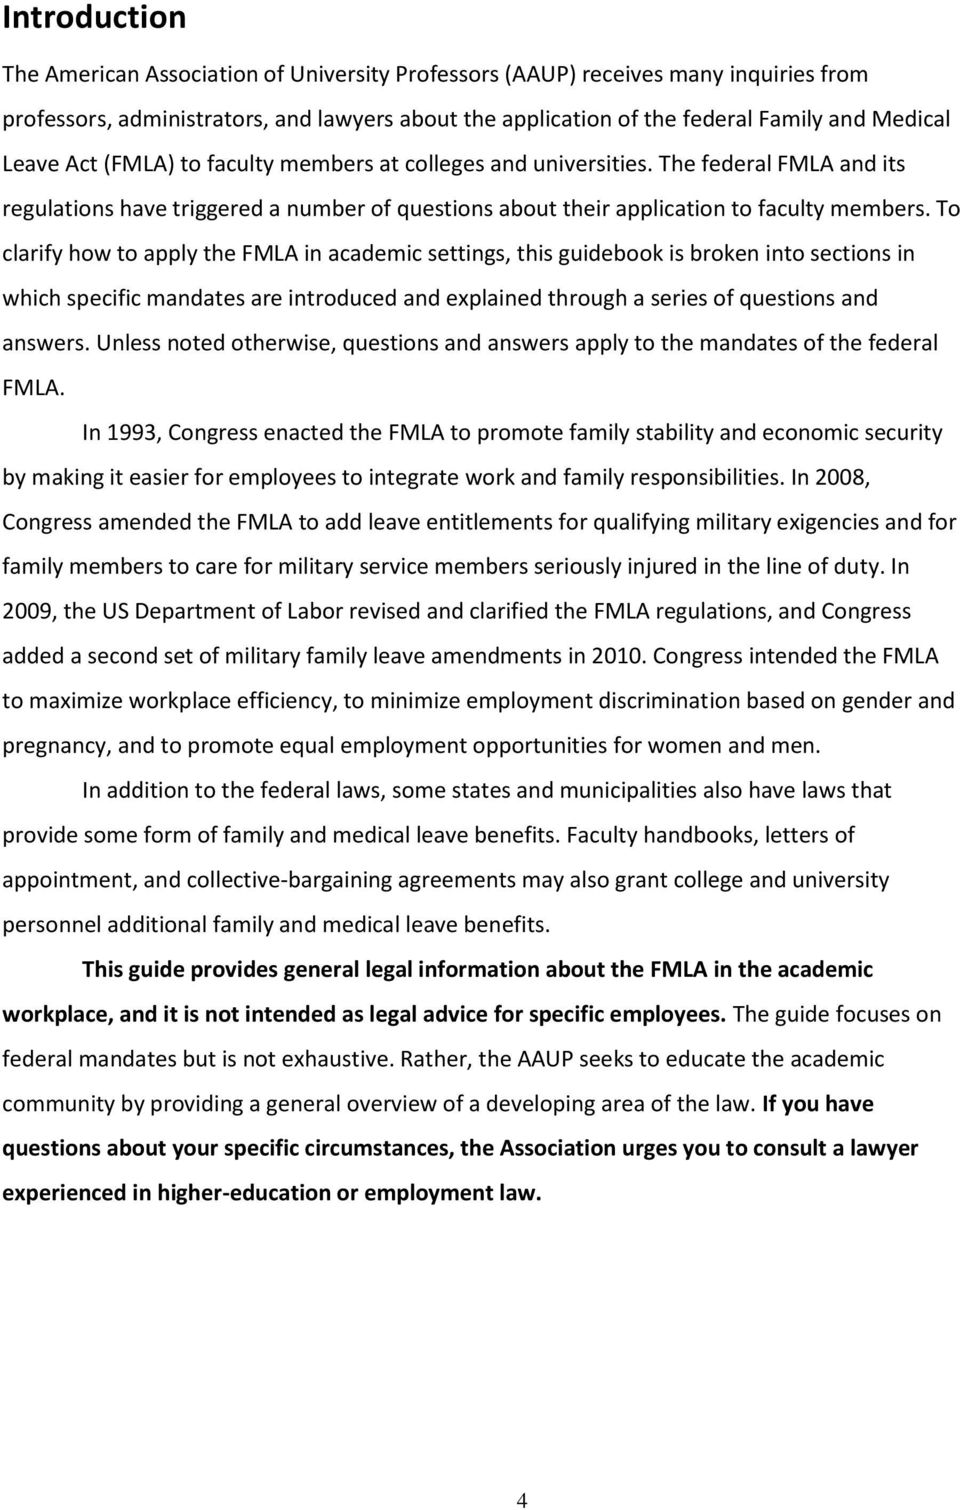 To clarify how to apply the FMLA in academic settings, this guidebook is broken into sections in which specific mandates are introduced and explained through a series of questions and answers.